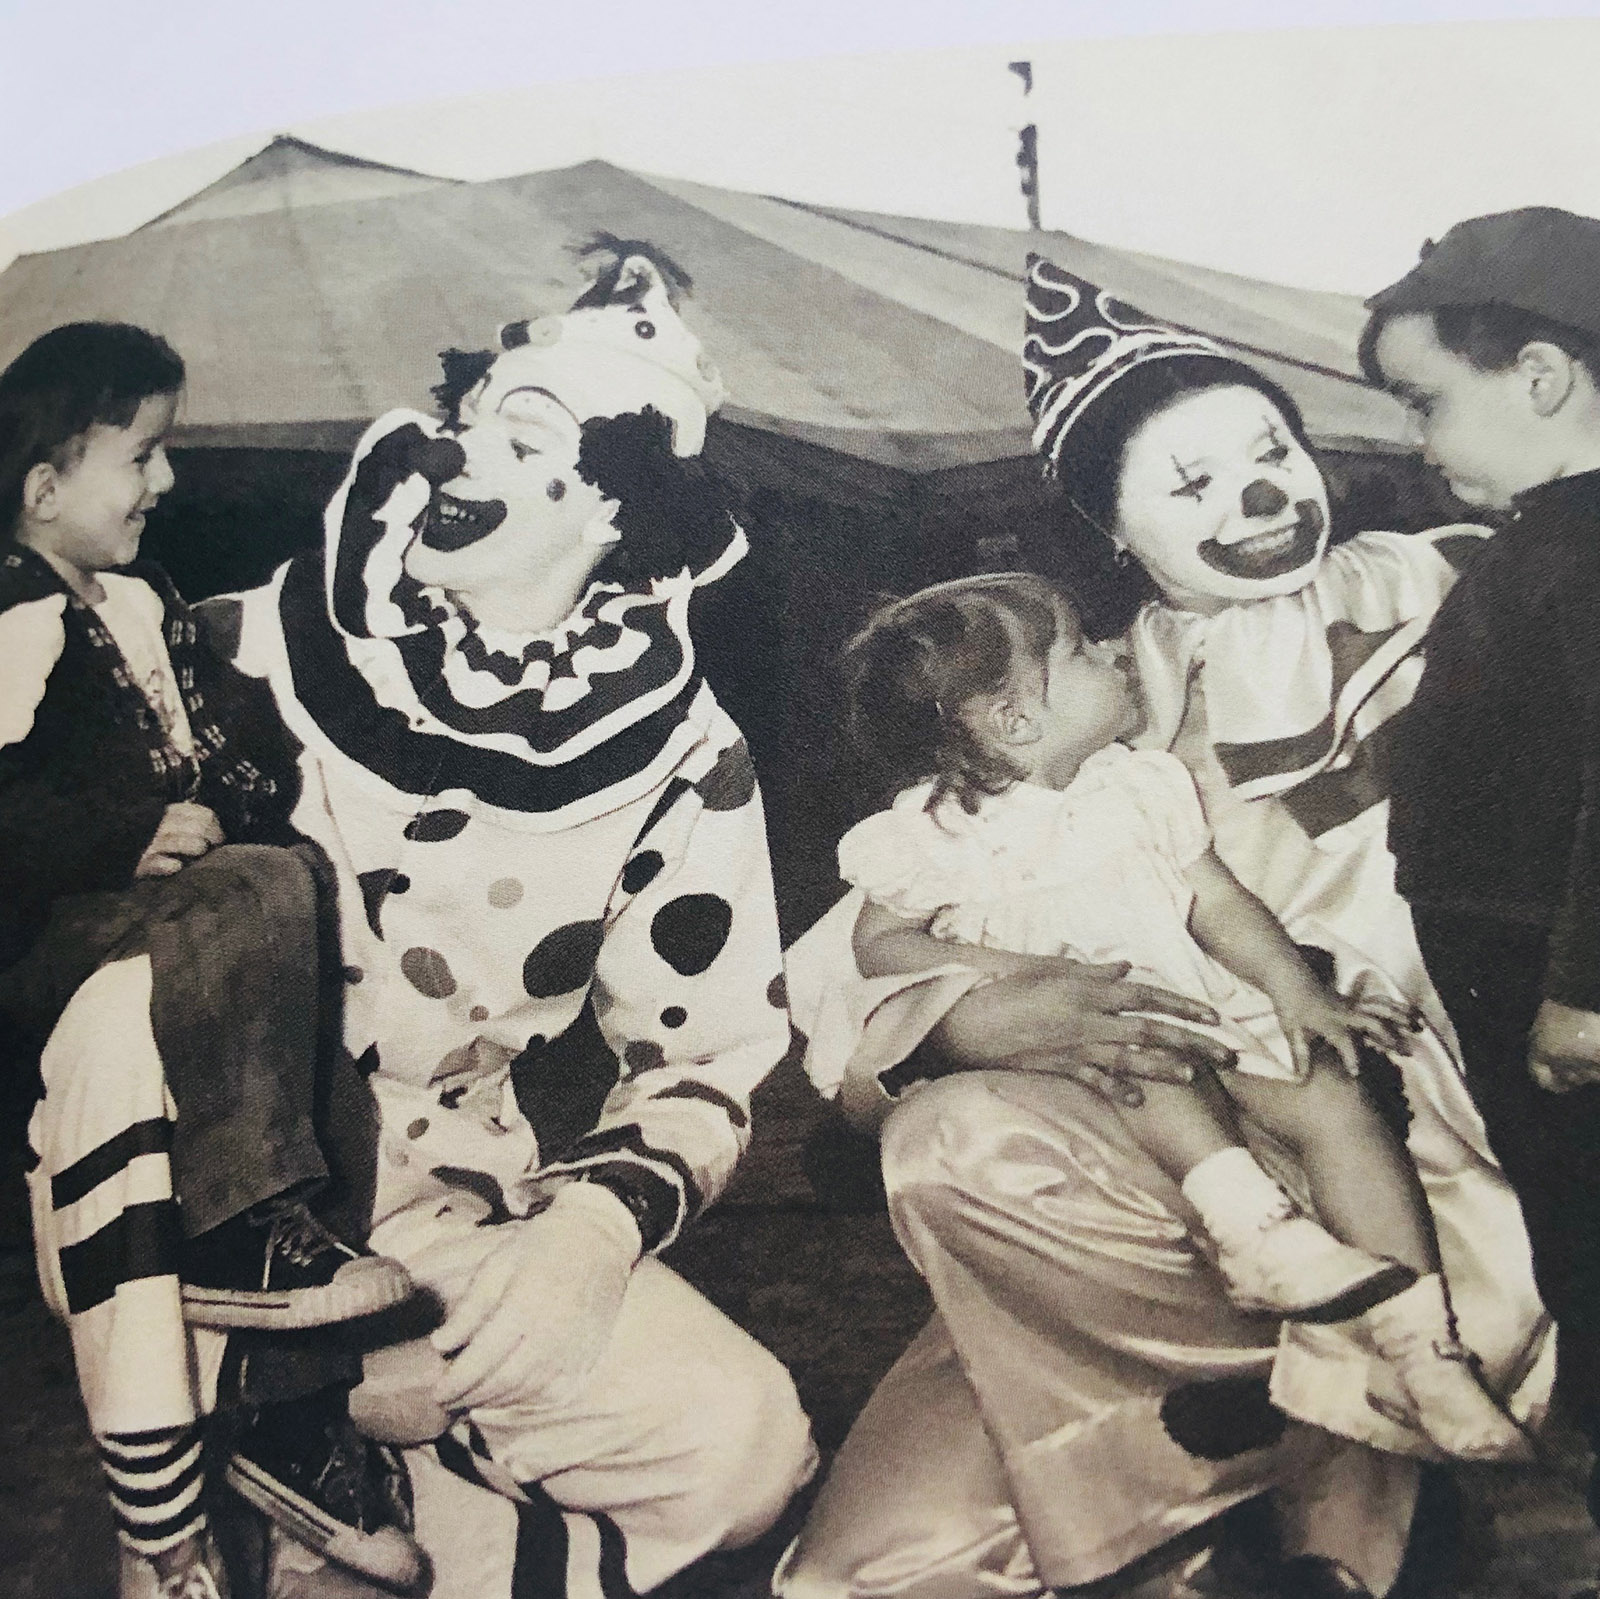 black and white photo of clowns in the sixties